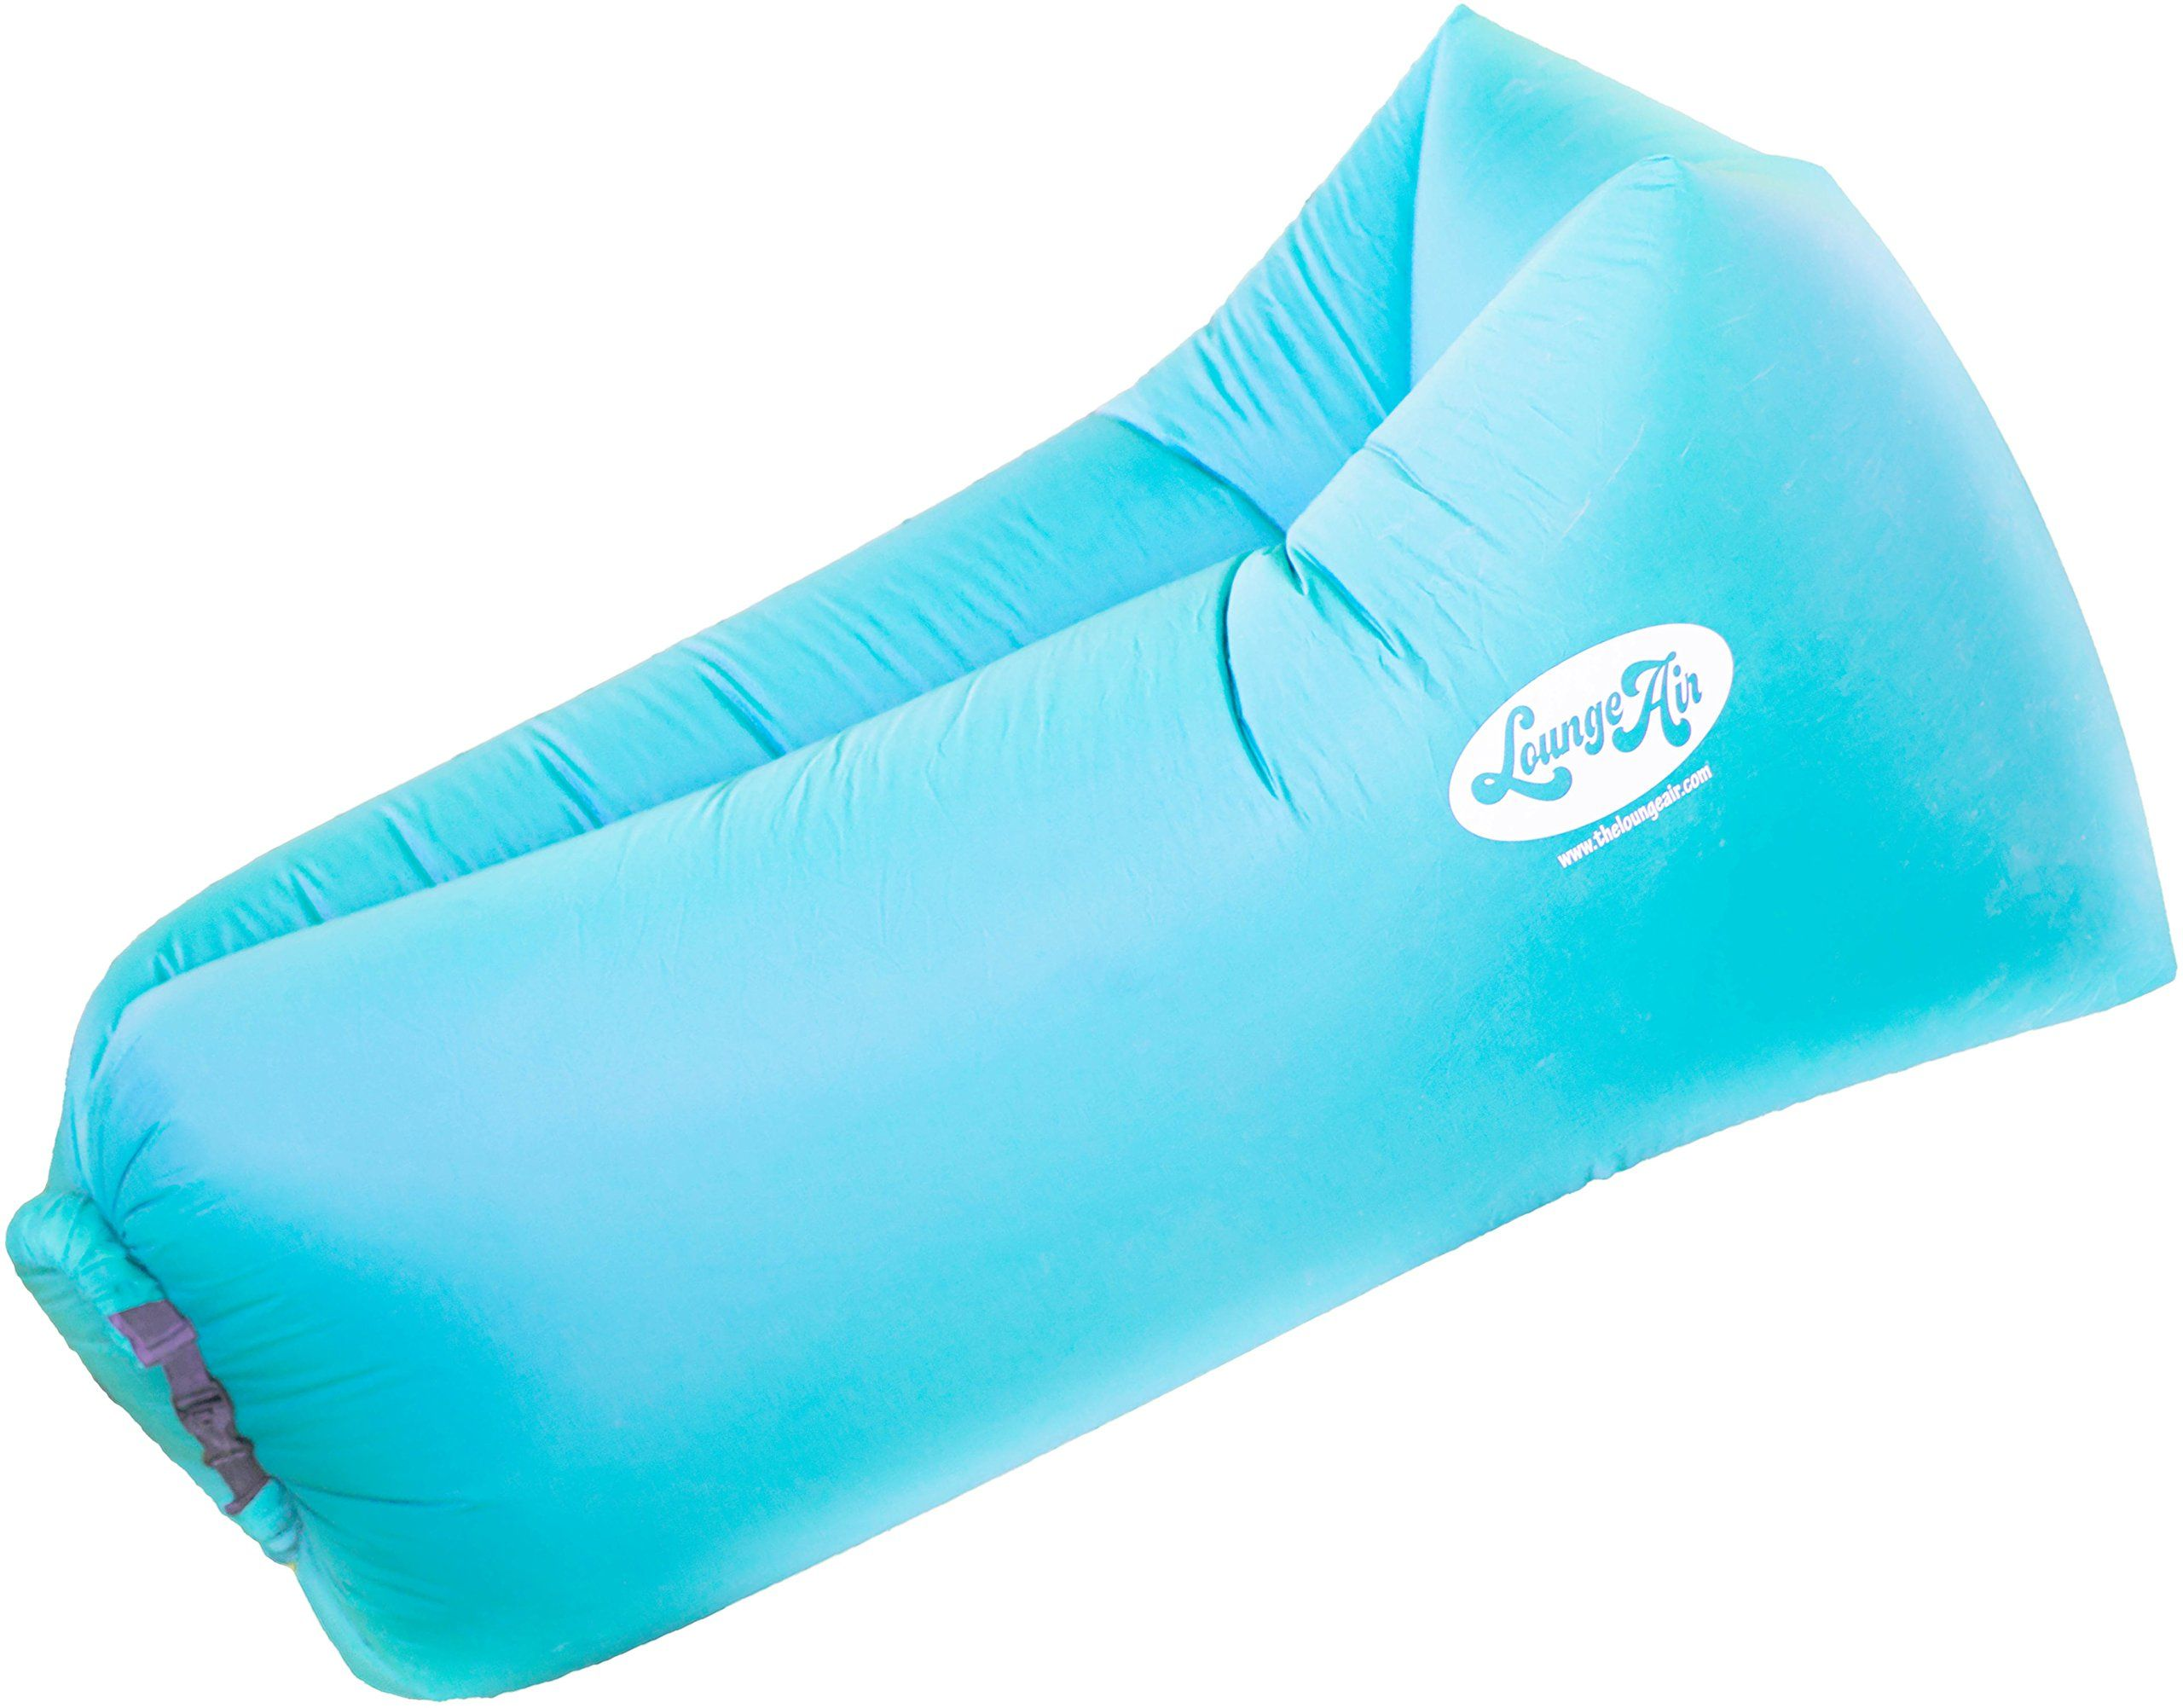 Loungeair Inflatable Pool Float Lounger Blow Up Air Mattress Bed